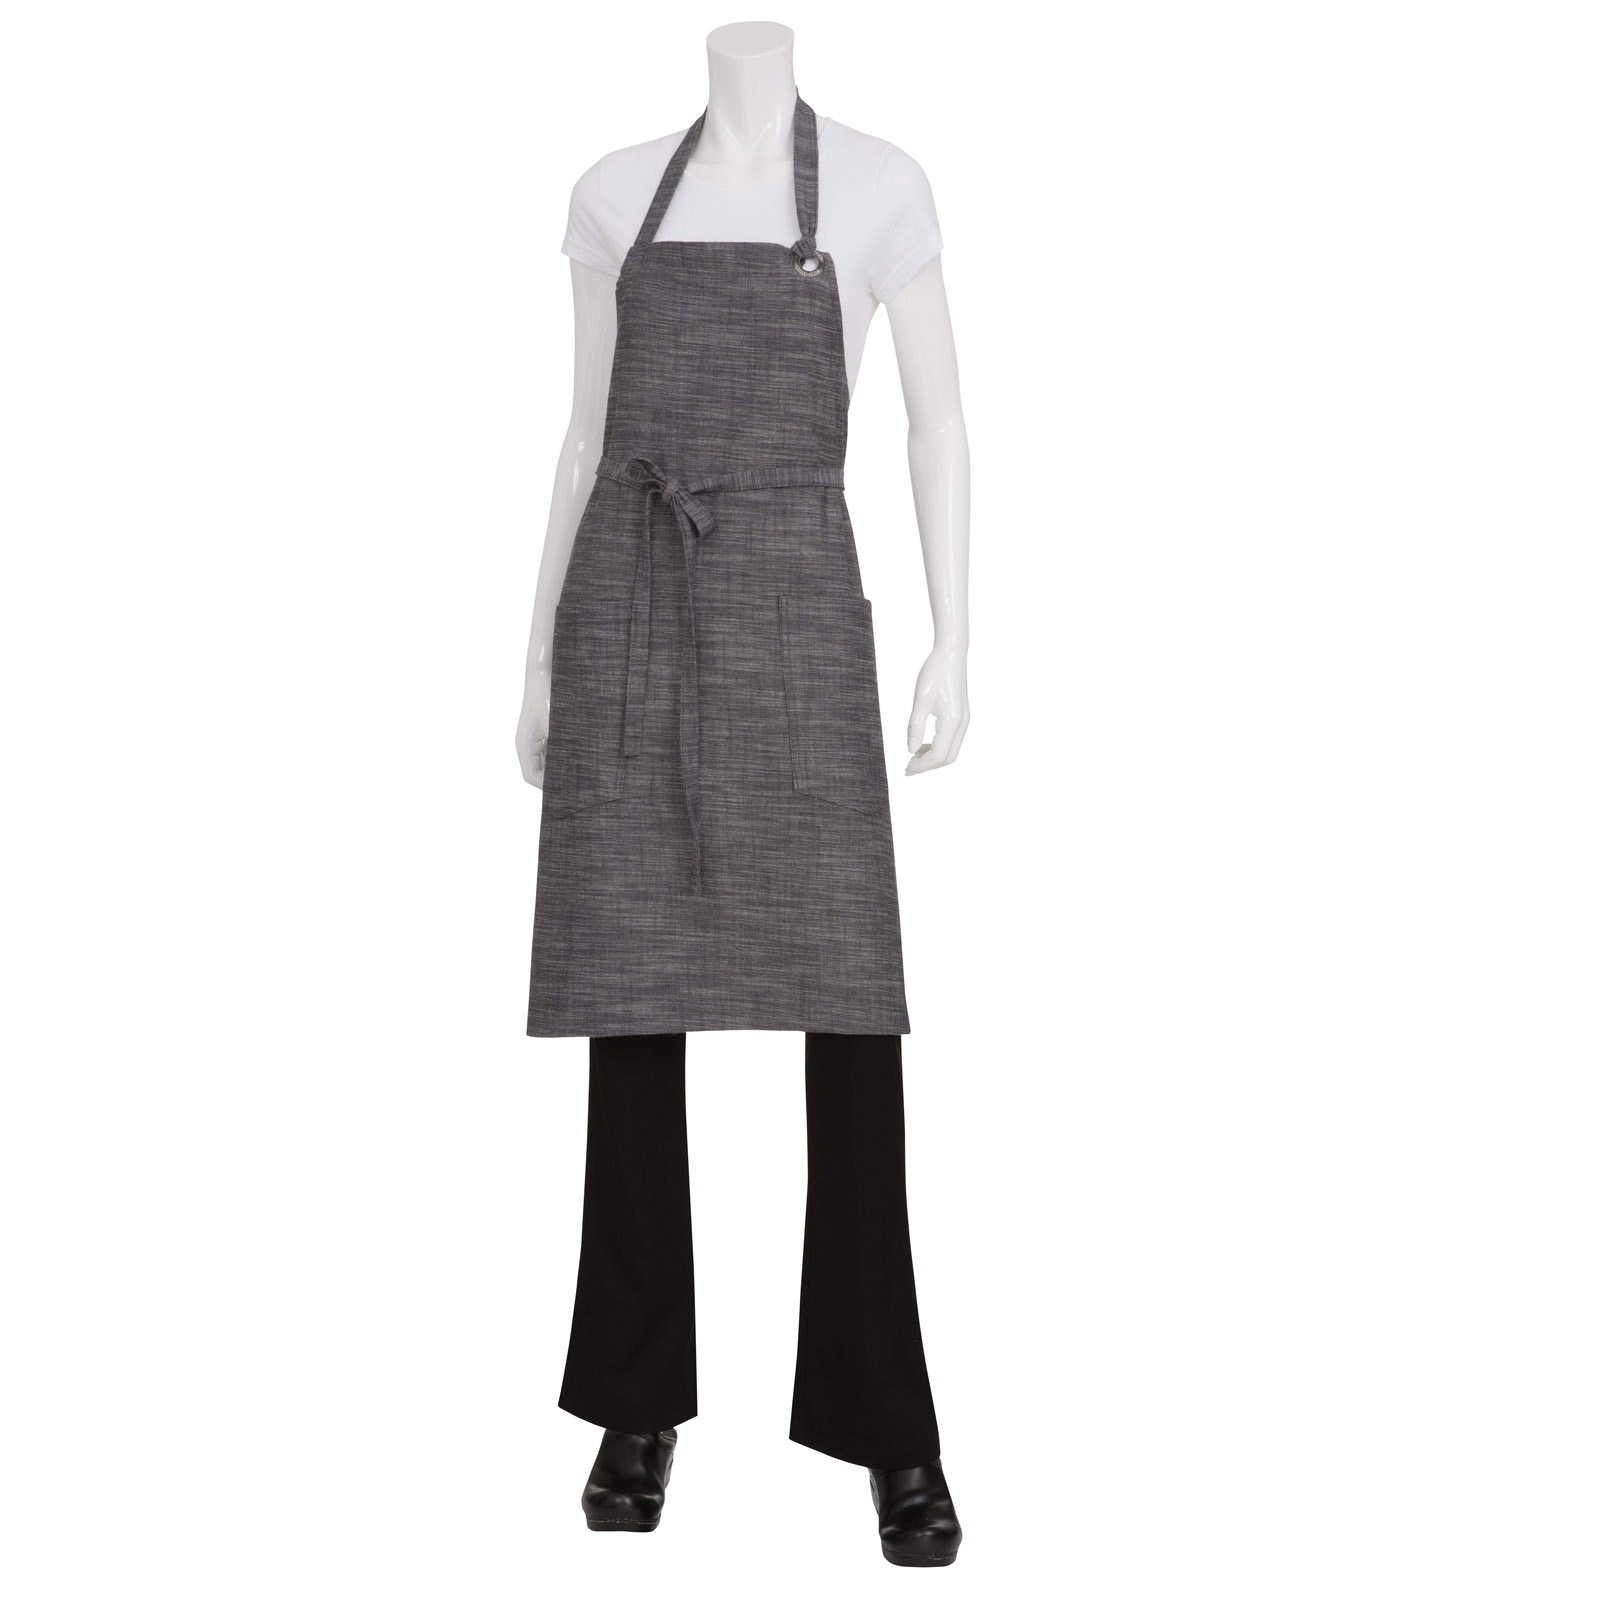 Chef Works ABXX052BSL0 bib apron